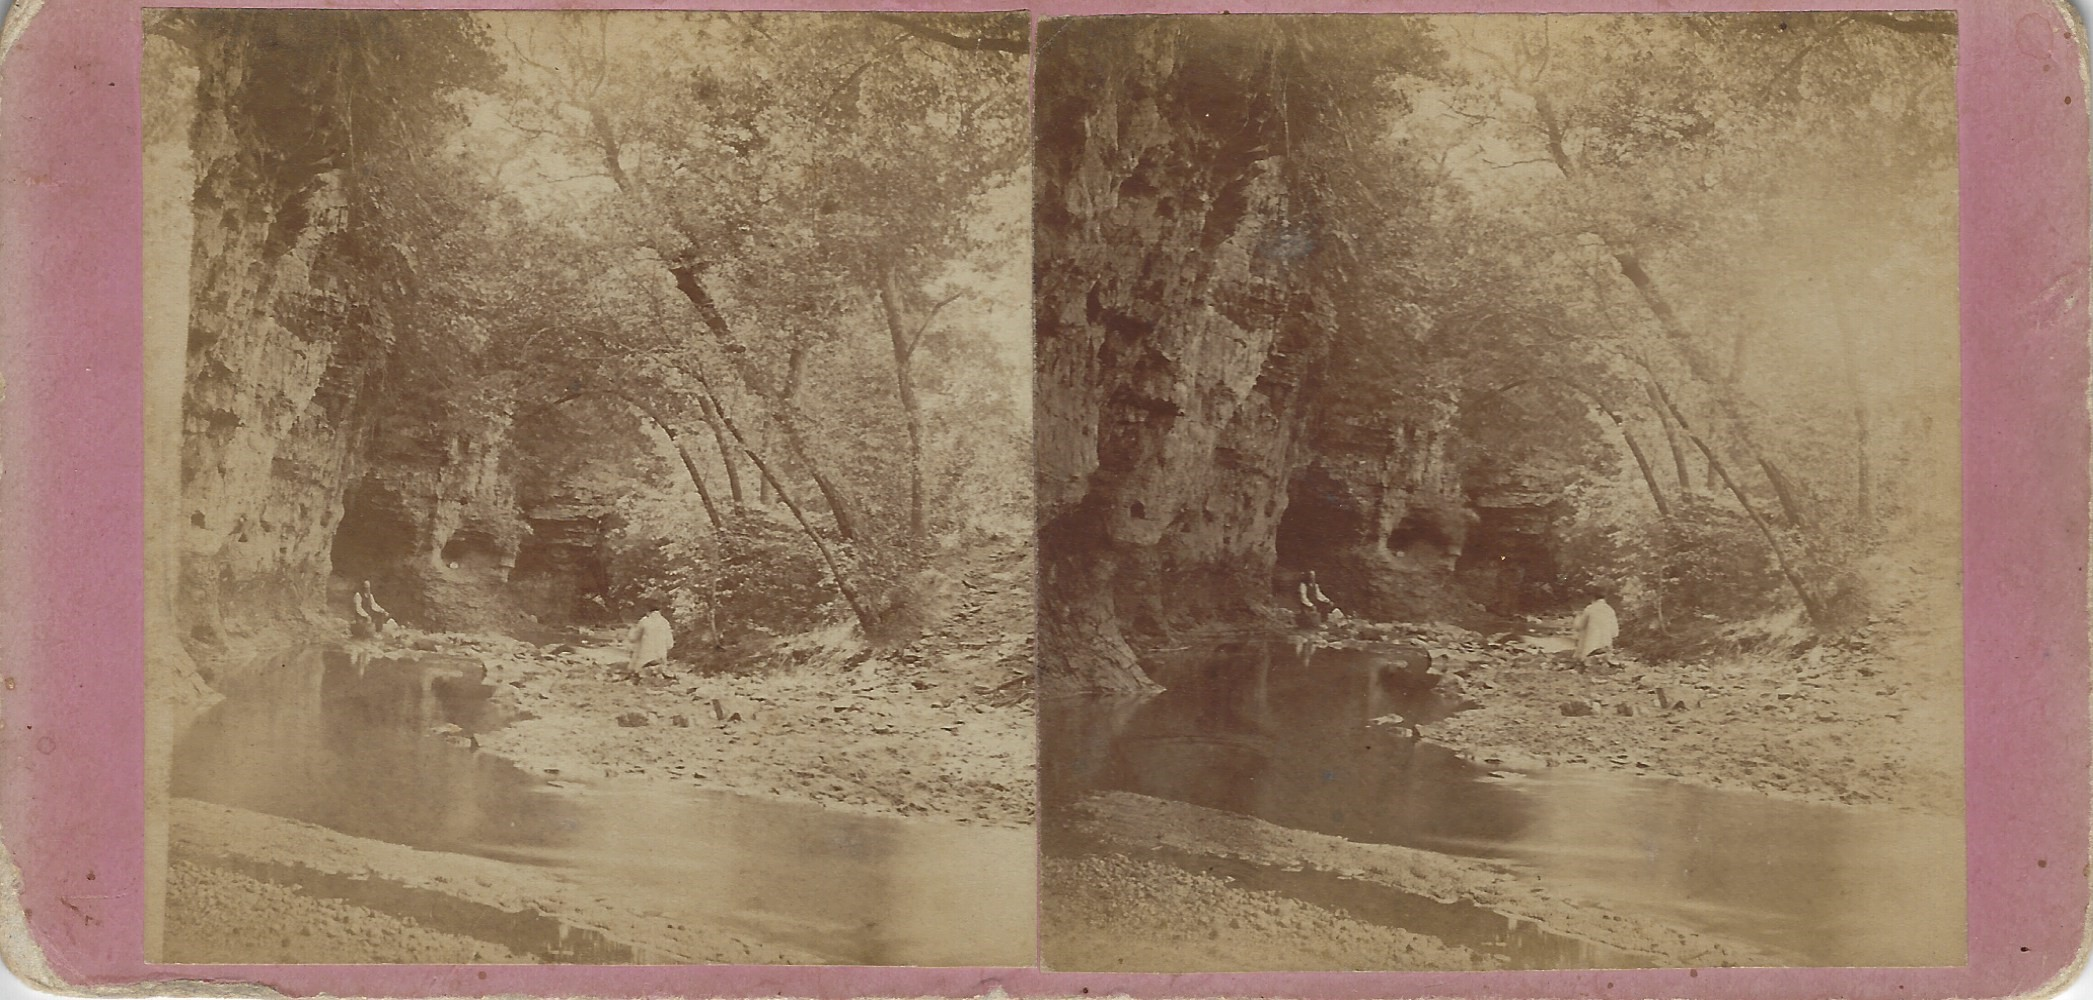 LJTP 100.273 - S. Root - On the Maquoketa River - c1875